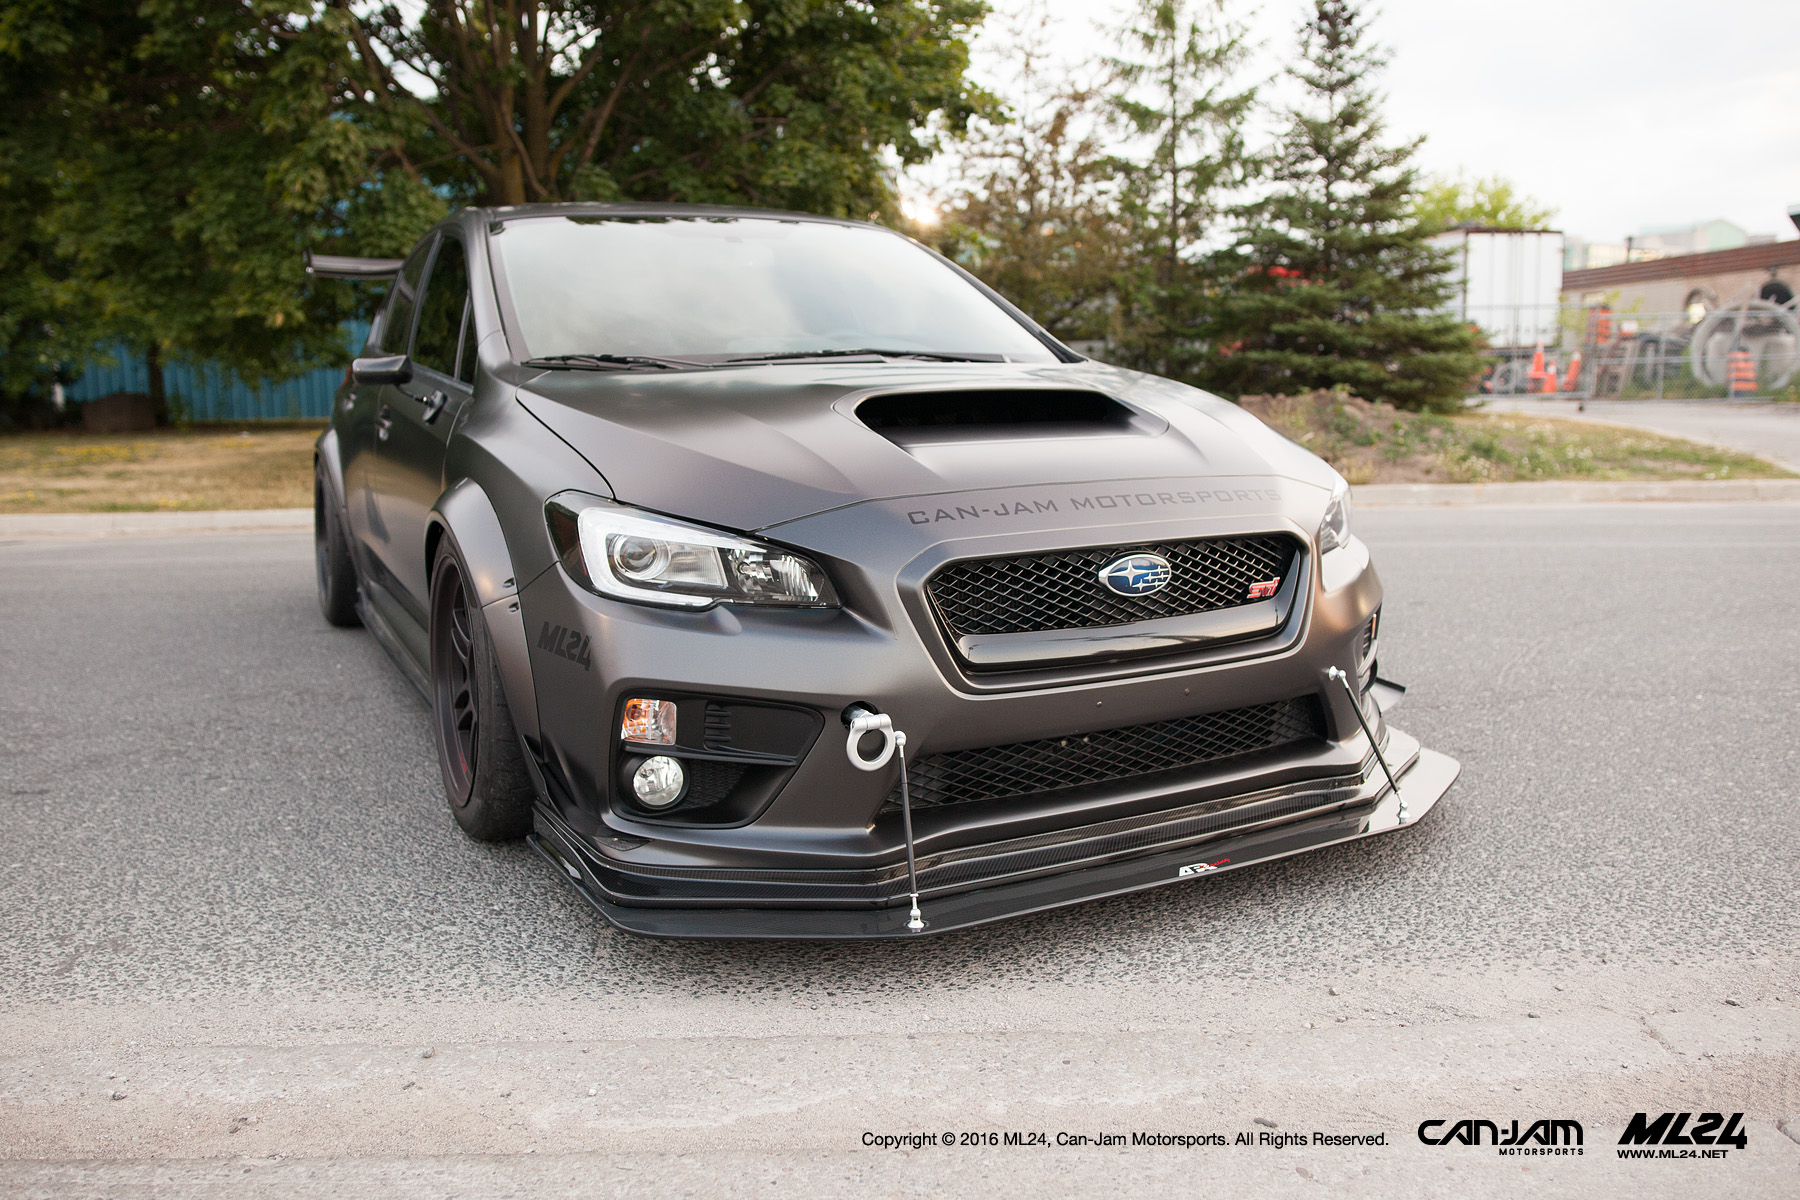 ML24 x Can-Jam Motorsports | 2015 Subaru WRX STI Wide Body Fender